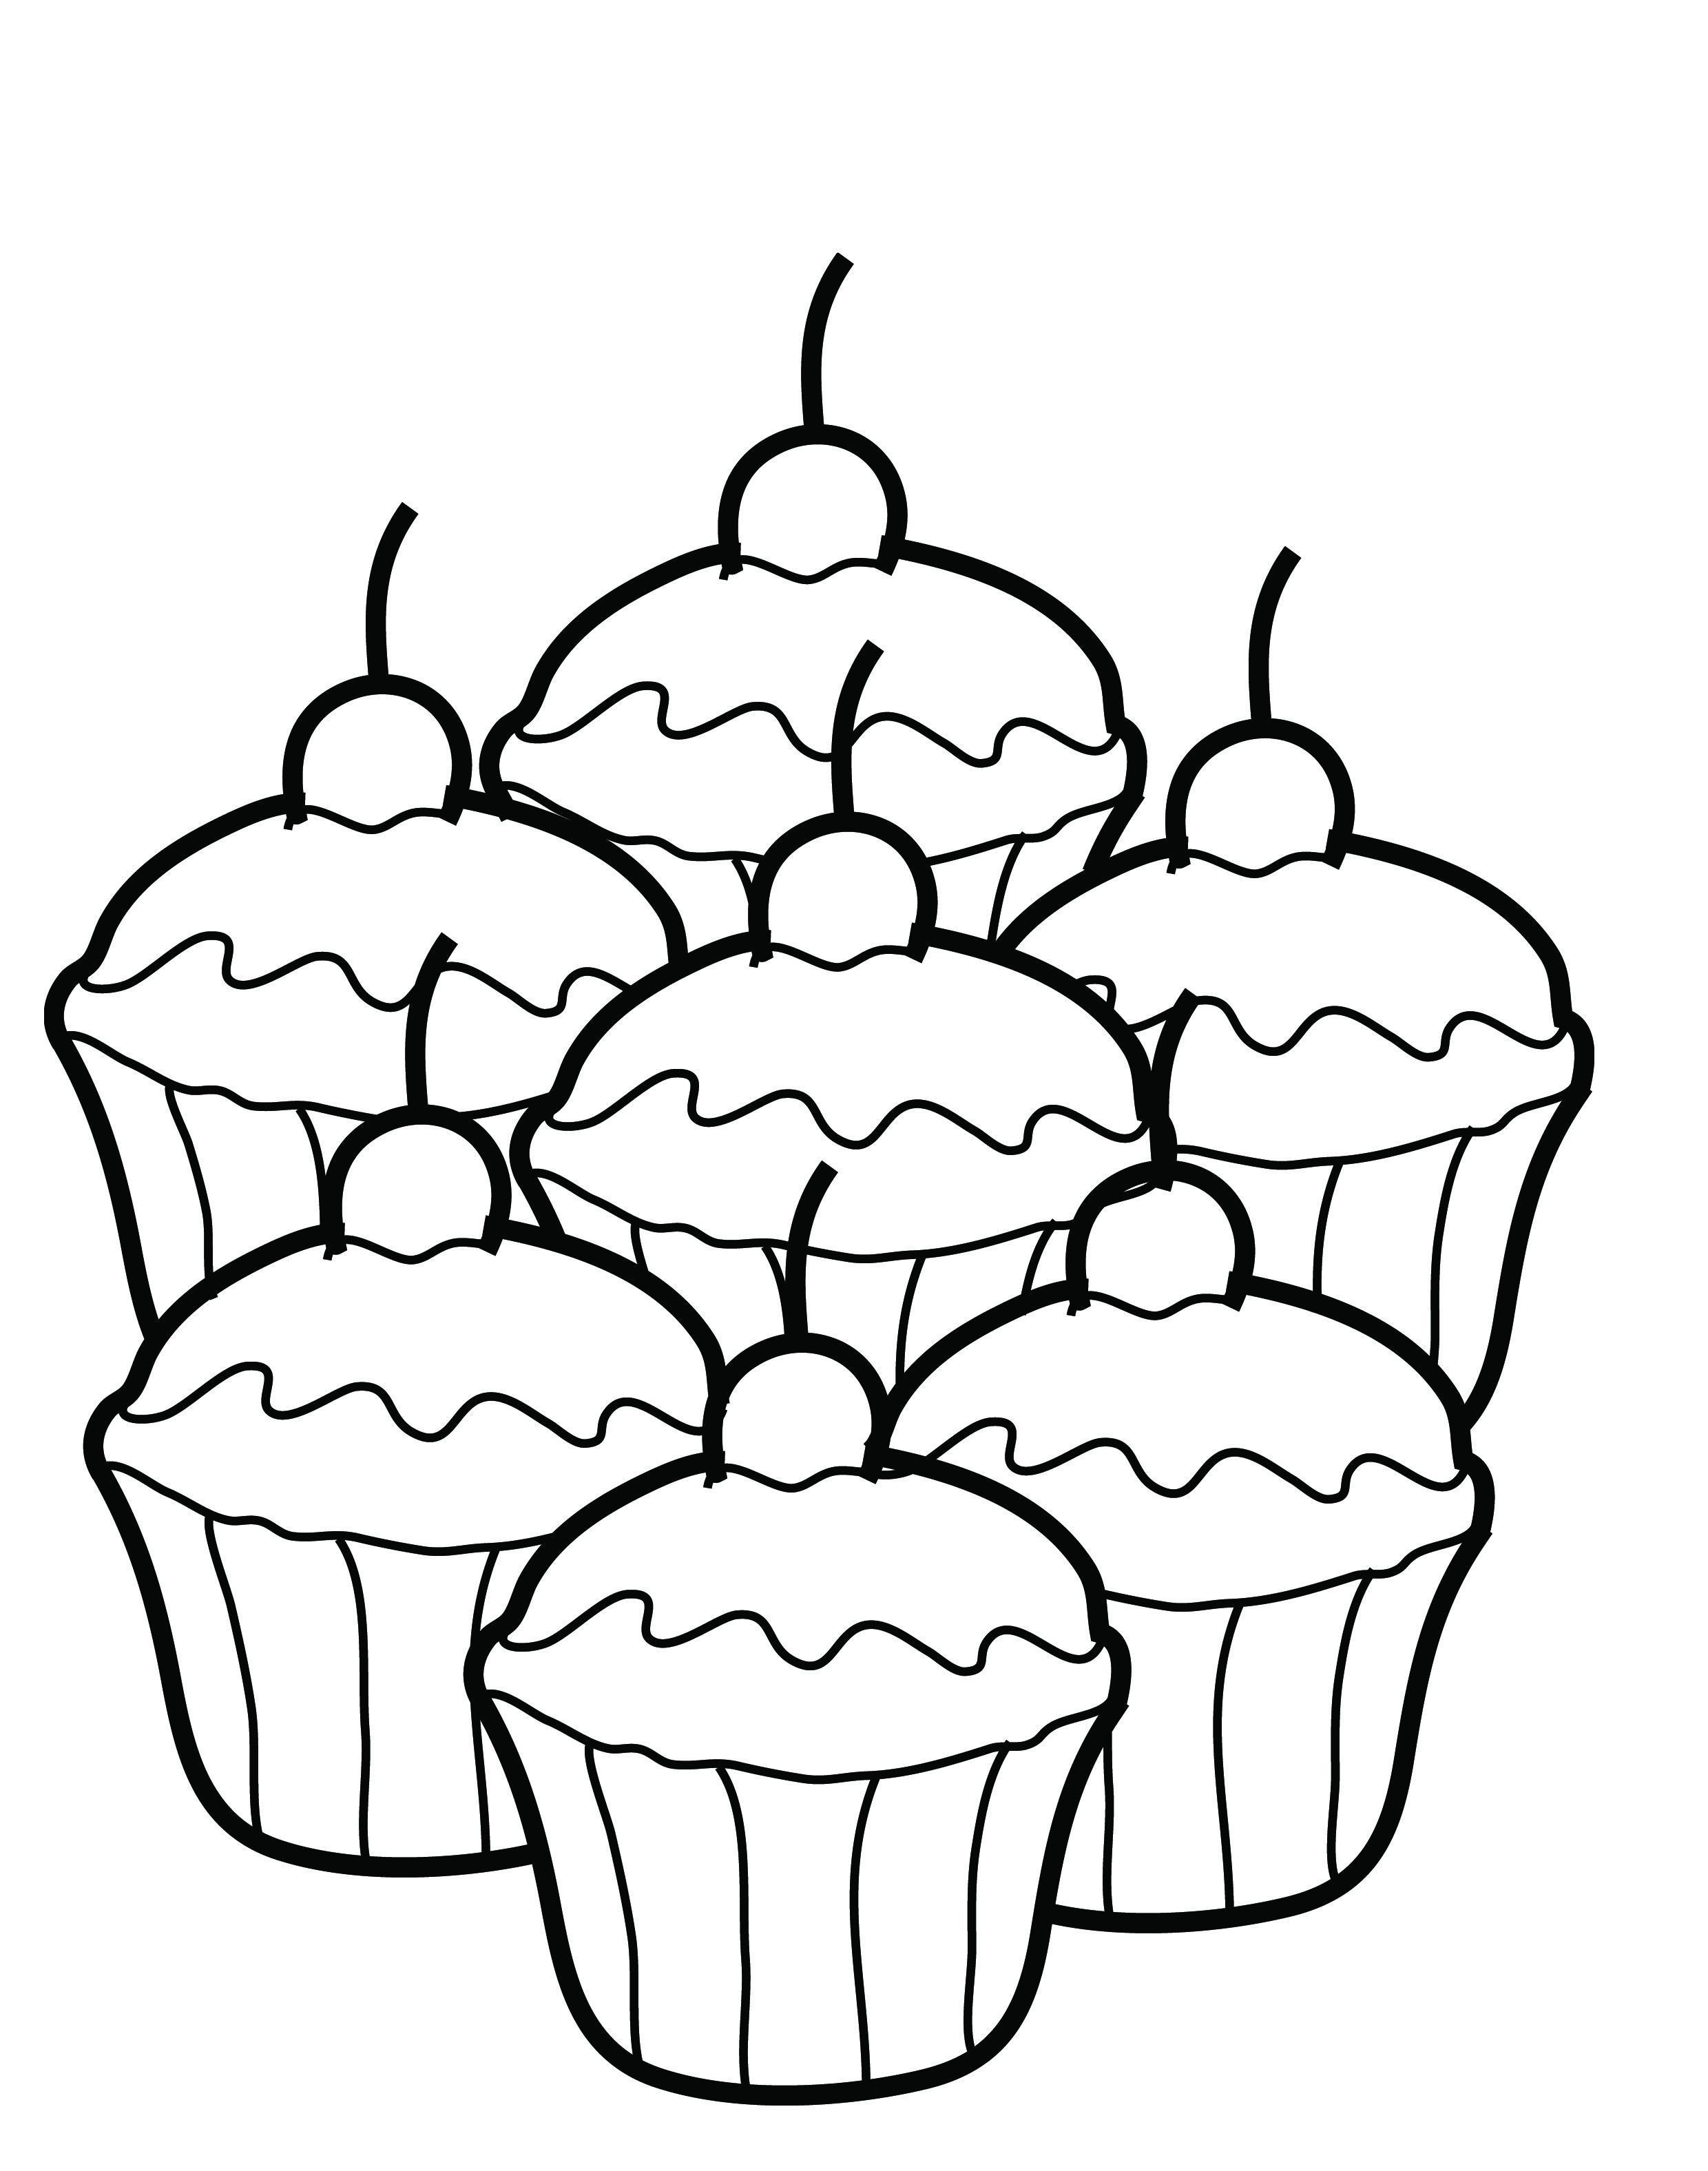 cupcake coloring pages for kids - Drawing For Children To Colour